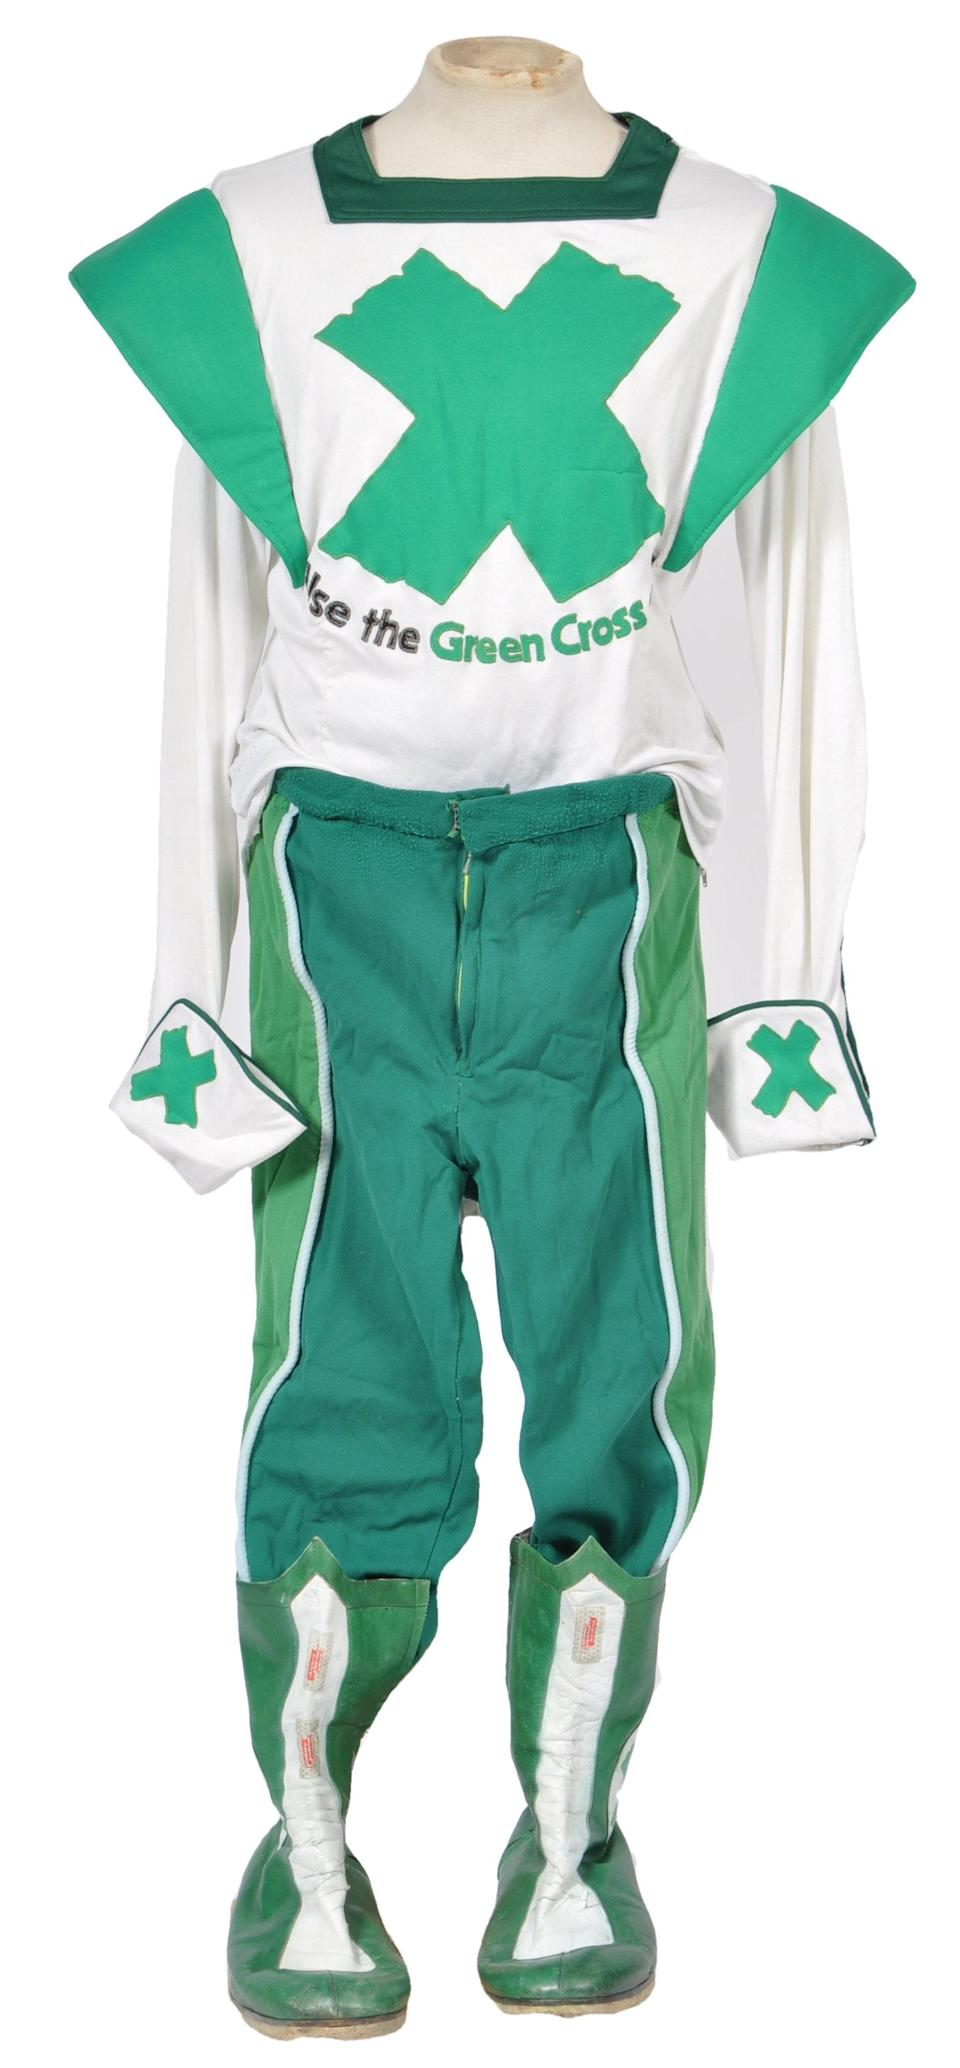 David Prowse's Green Cross Code Man superhero suit will be among the lots (East Bristol Auctions/eastbristol.co.uk)